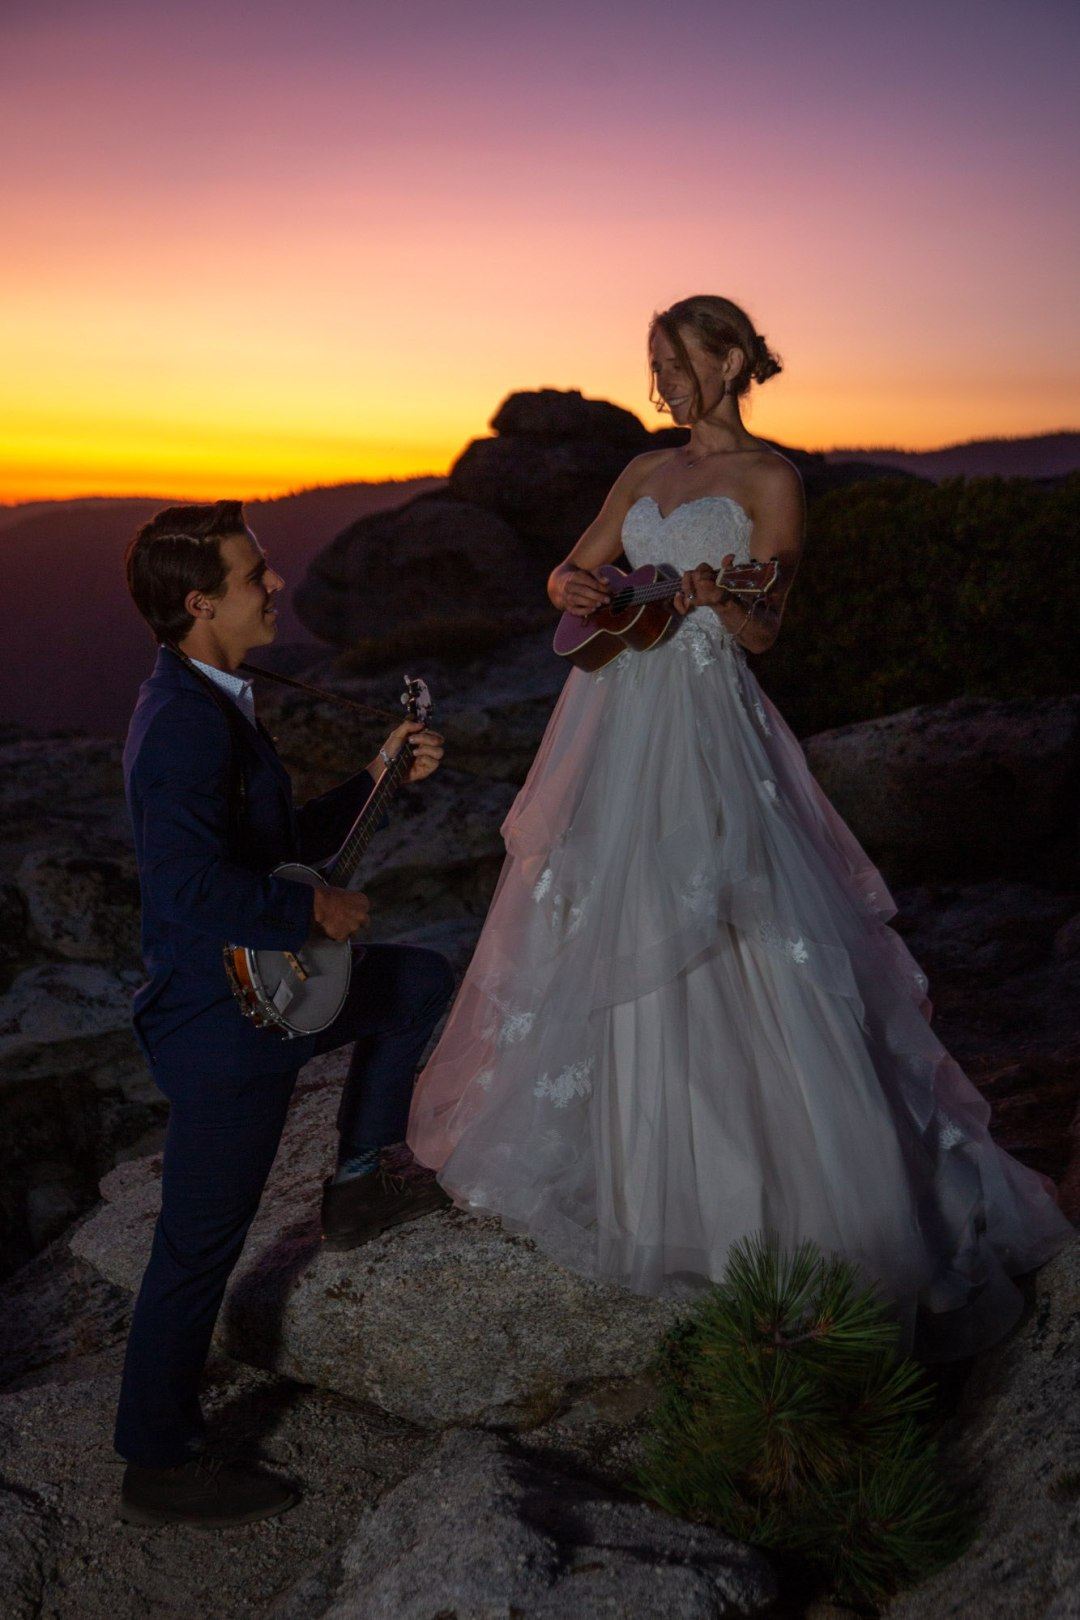 Bride plays ukulele while groom plays banjo as the sun sets